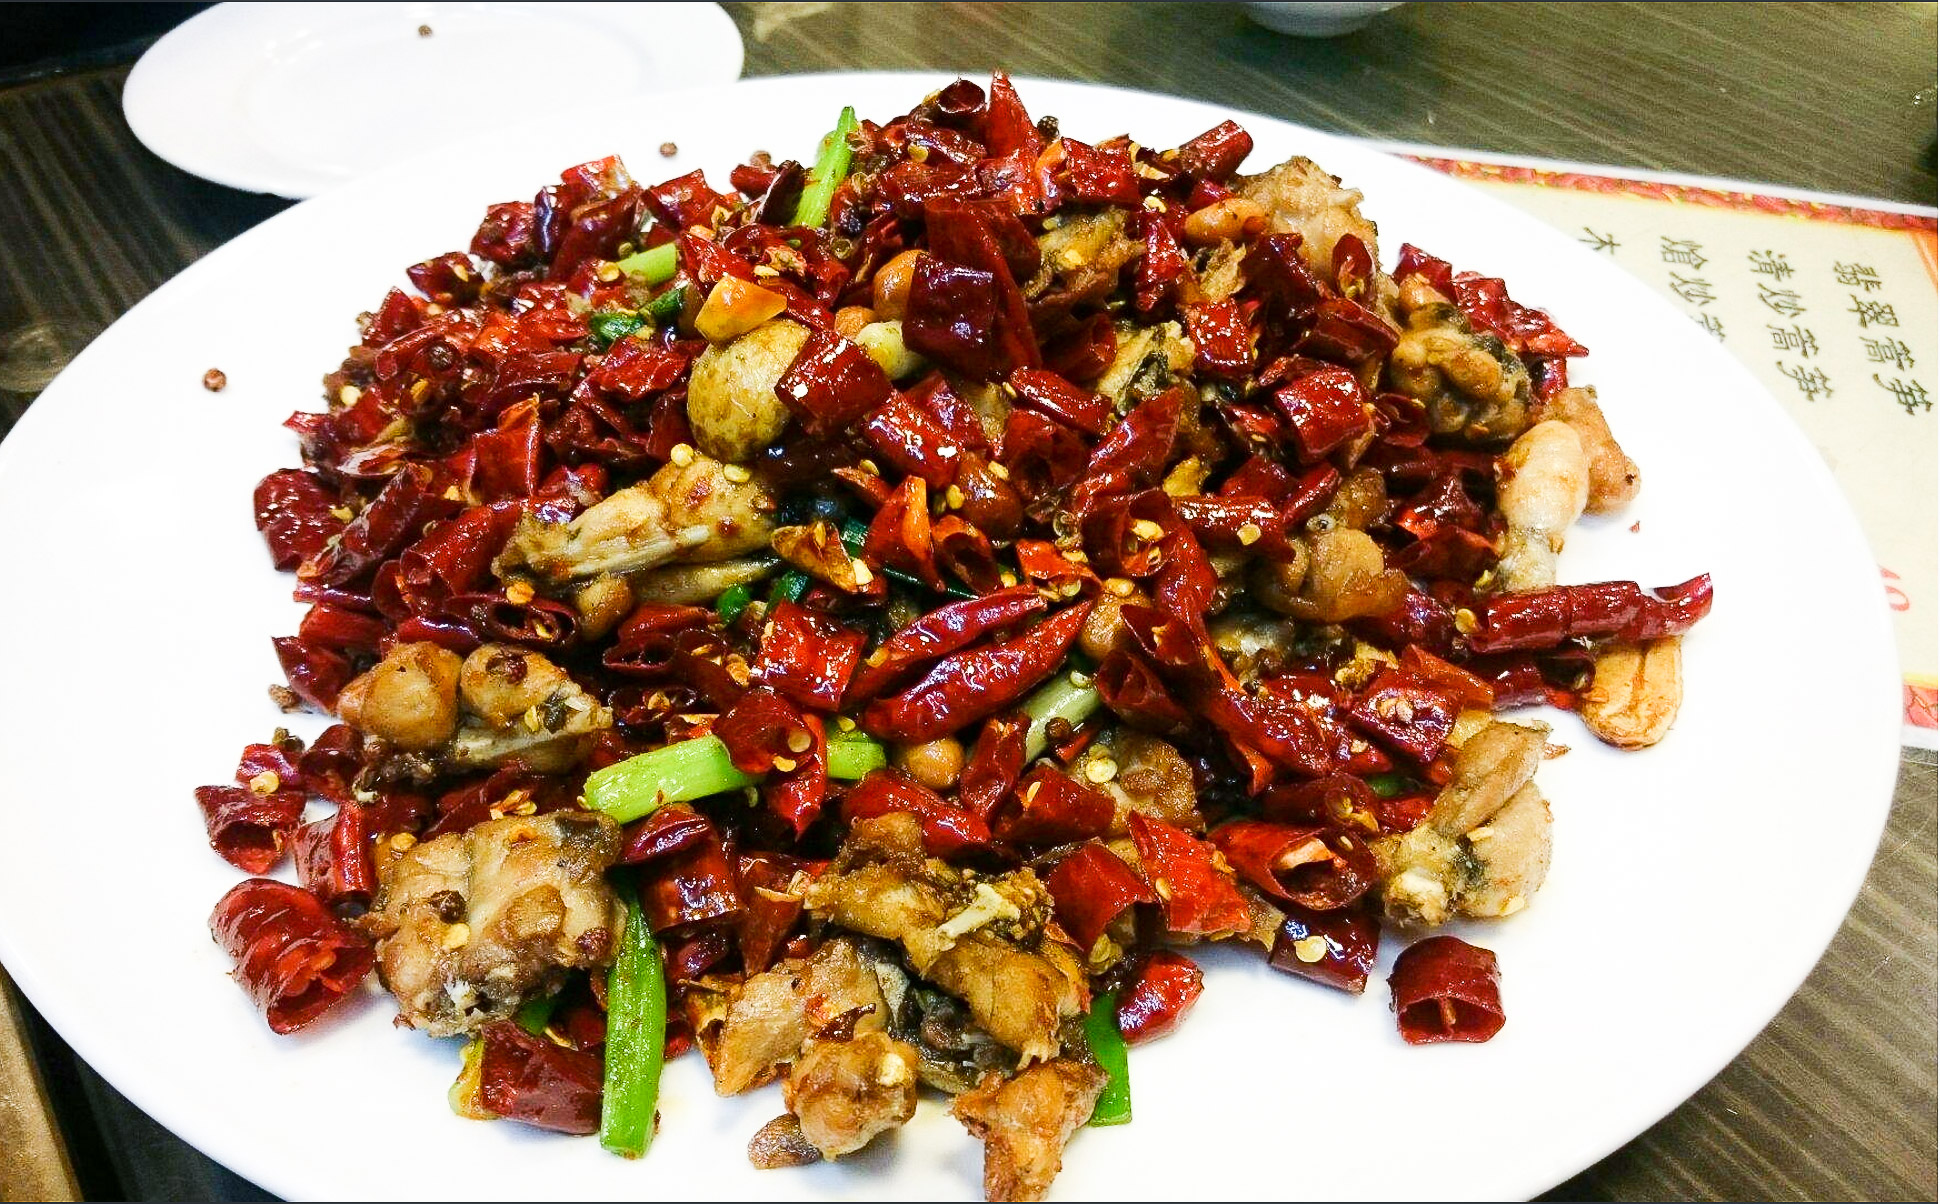 Dry-Fried Bullfrog with Chillis - Photo Credit: Tripadvisor